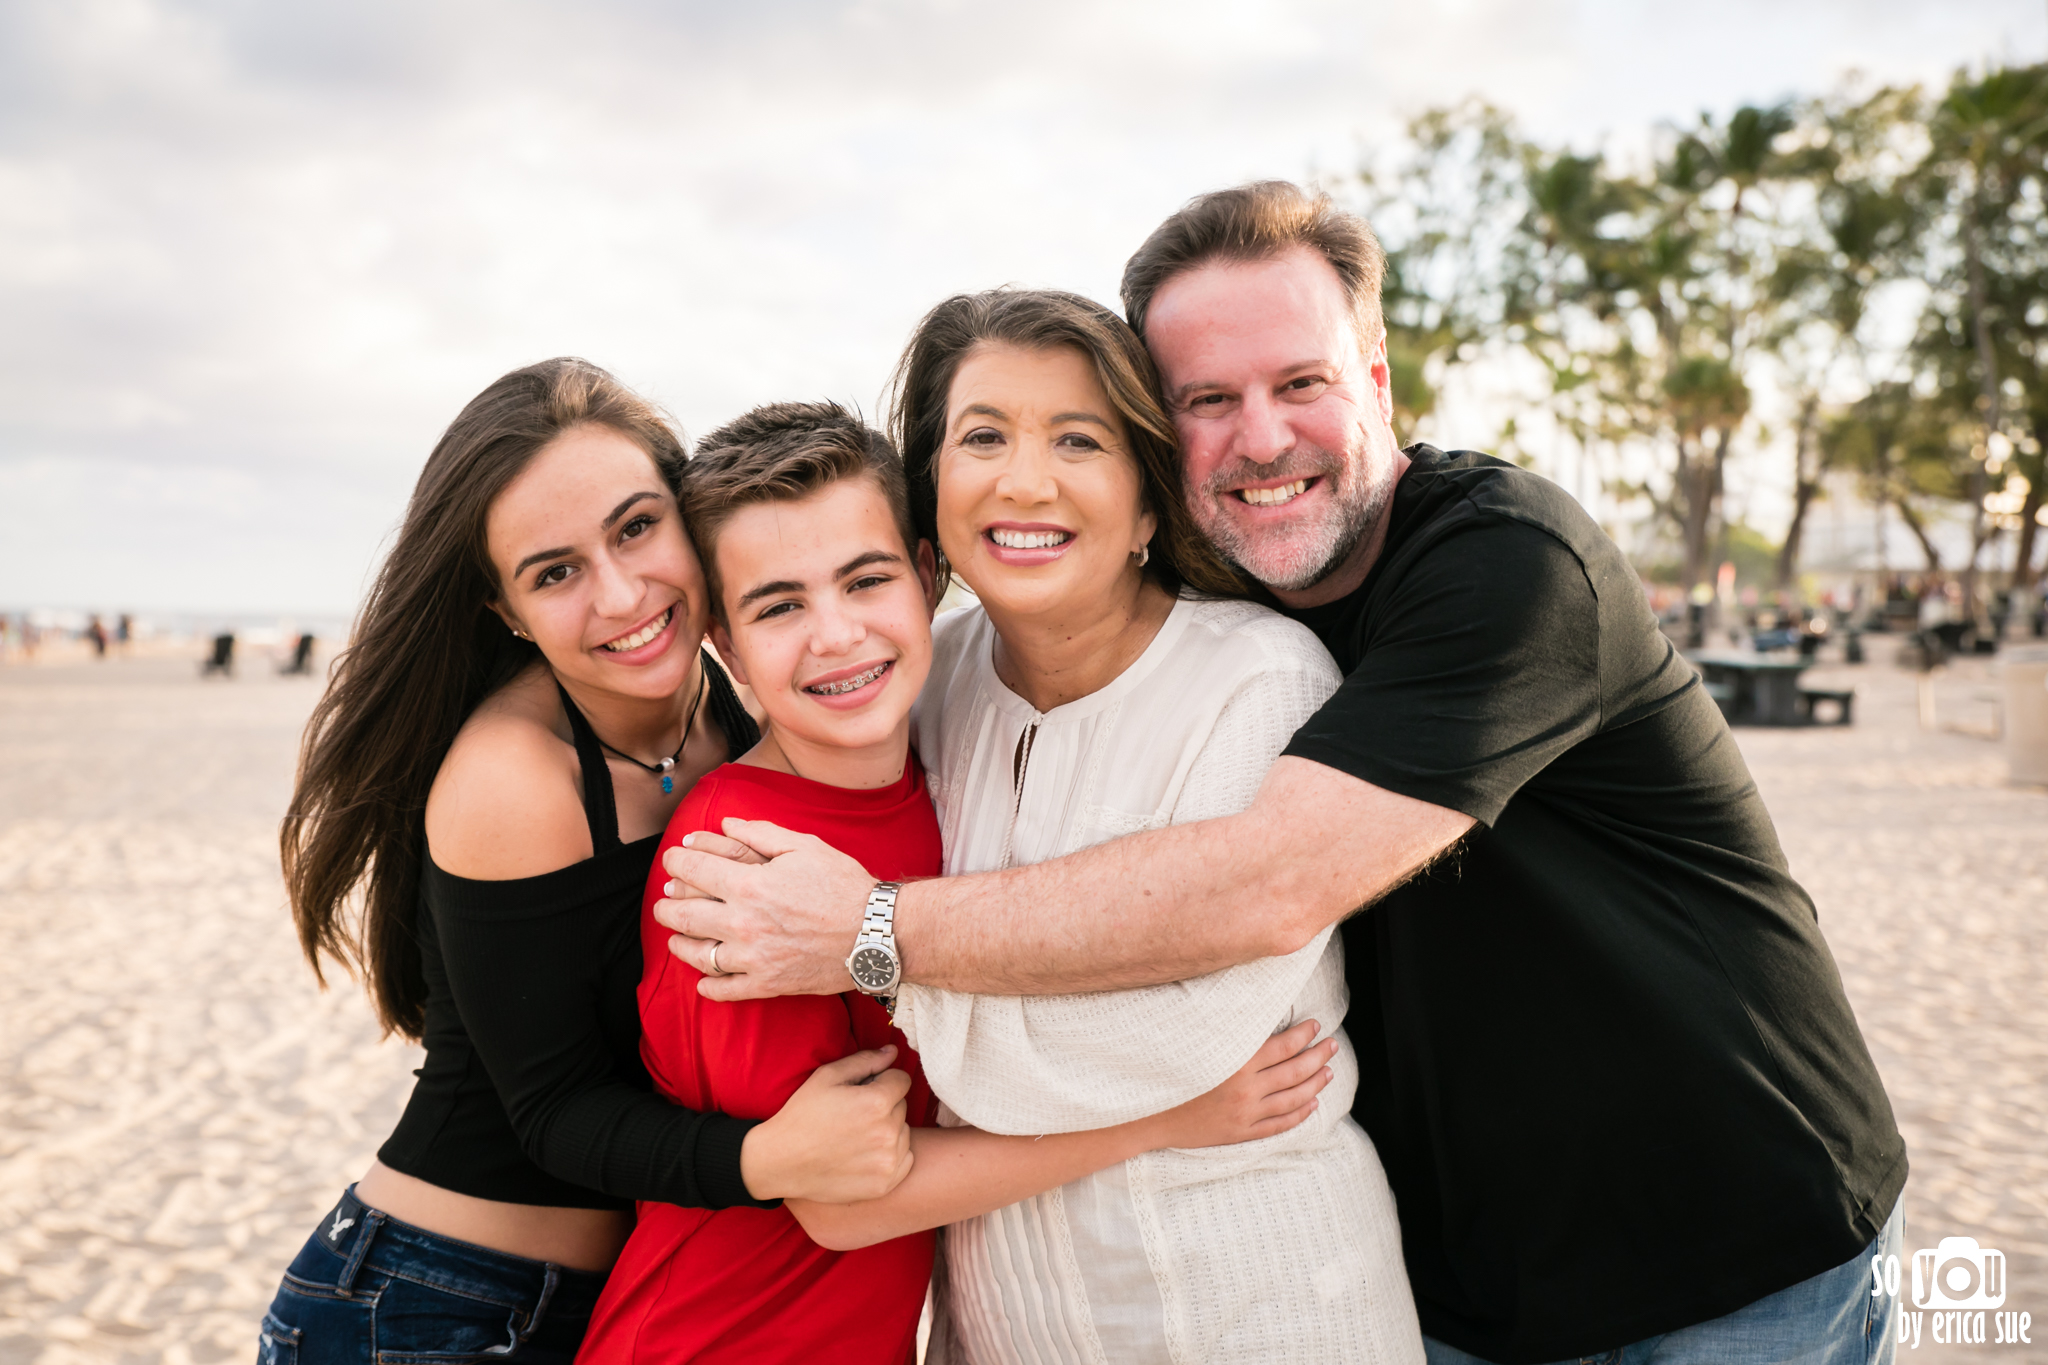 bar-mitzvay-pre-shoot-family-photography-so-you-by-erica-sue-ft-lauderdale-fl-florida-beach-8906.jpg